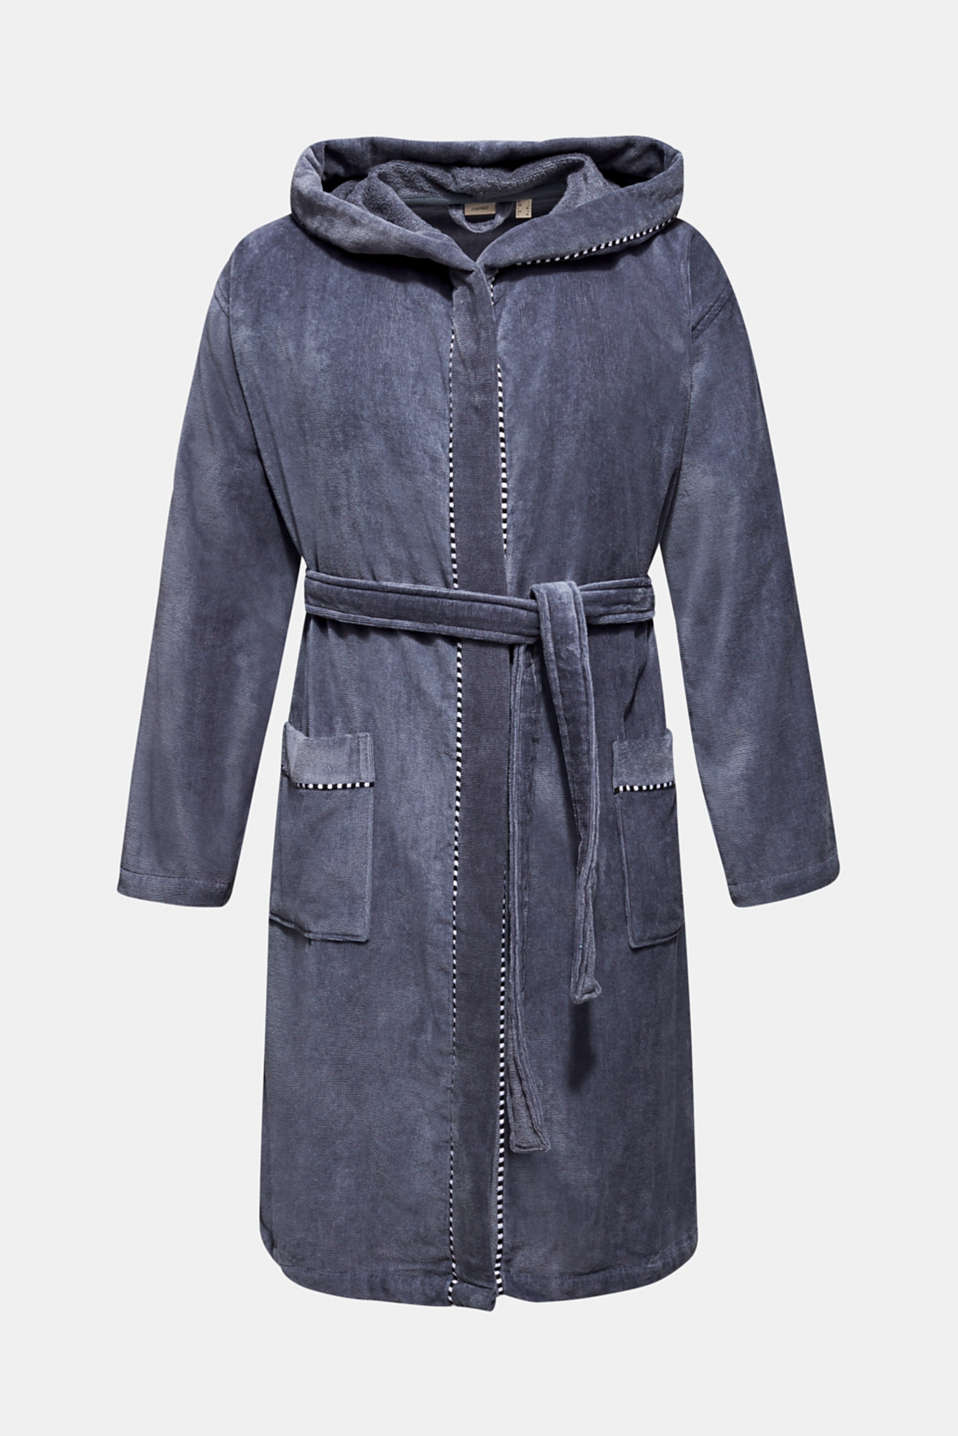 Unisex bathrobe, 100% cotton, GREY STEEL, detail image number 4